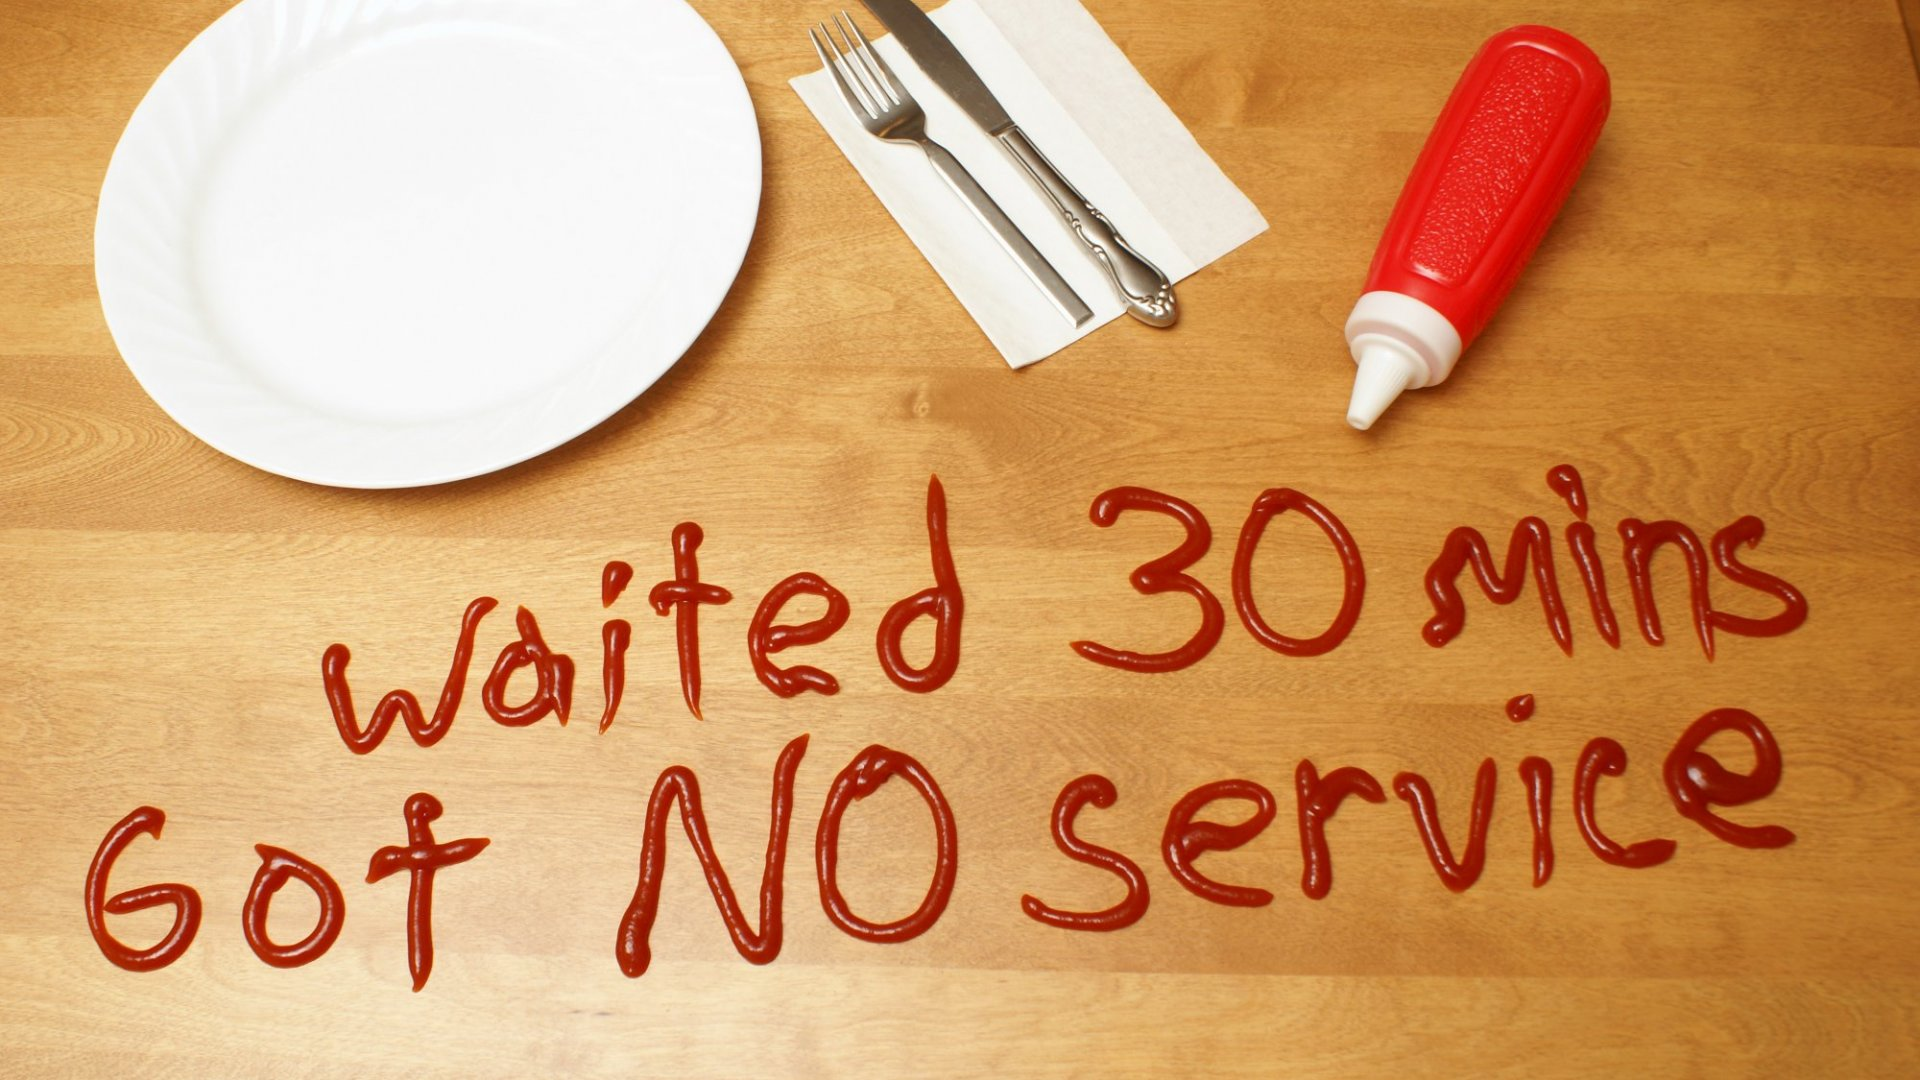 If our service drops when we get busy, lousy service may become the norm.